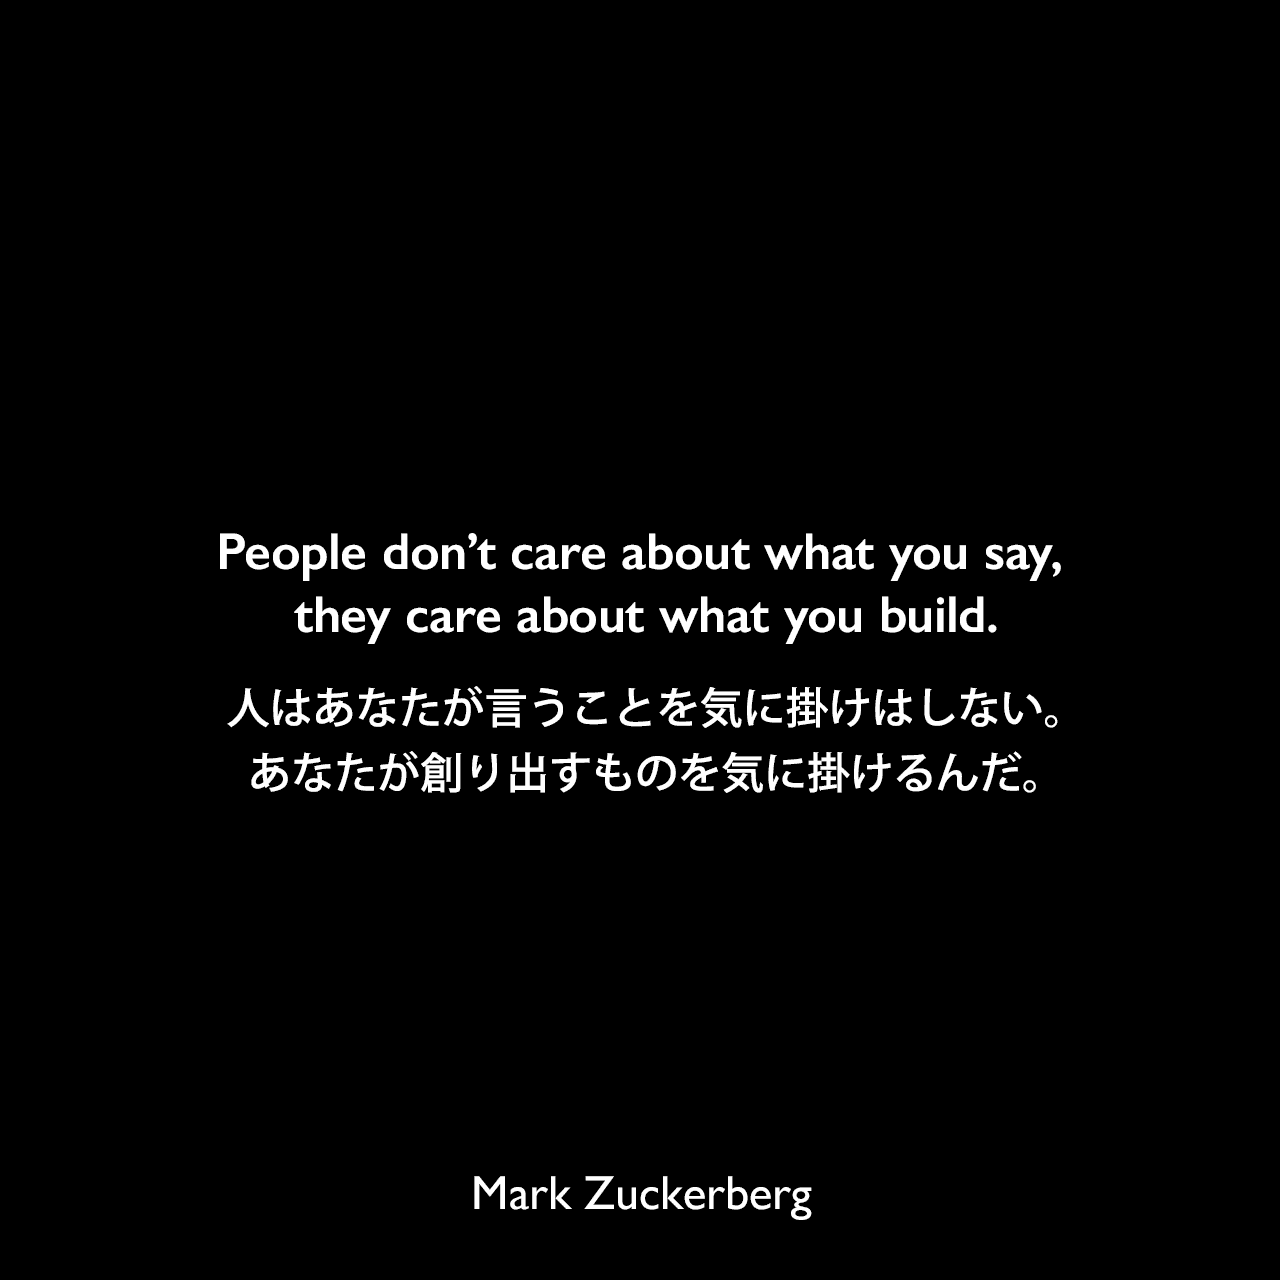 People don't care about what you say, they care about what you build.人はあなたが言うことを気に掛けはしない。あなたが創り出すものを気に掛けるんだ。Mark Zuckerberg